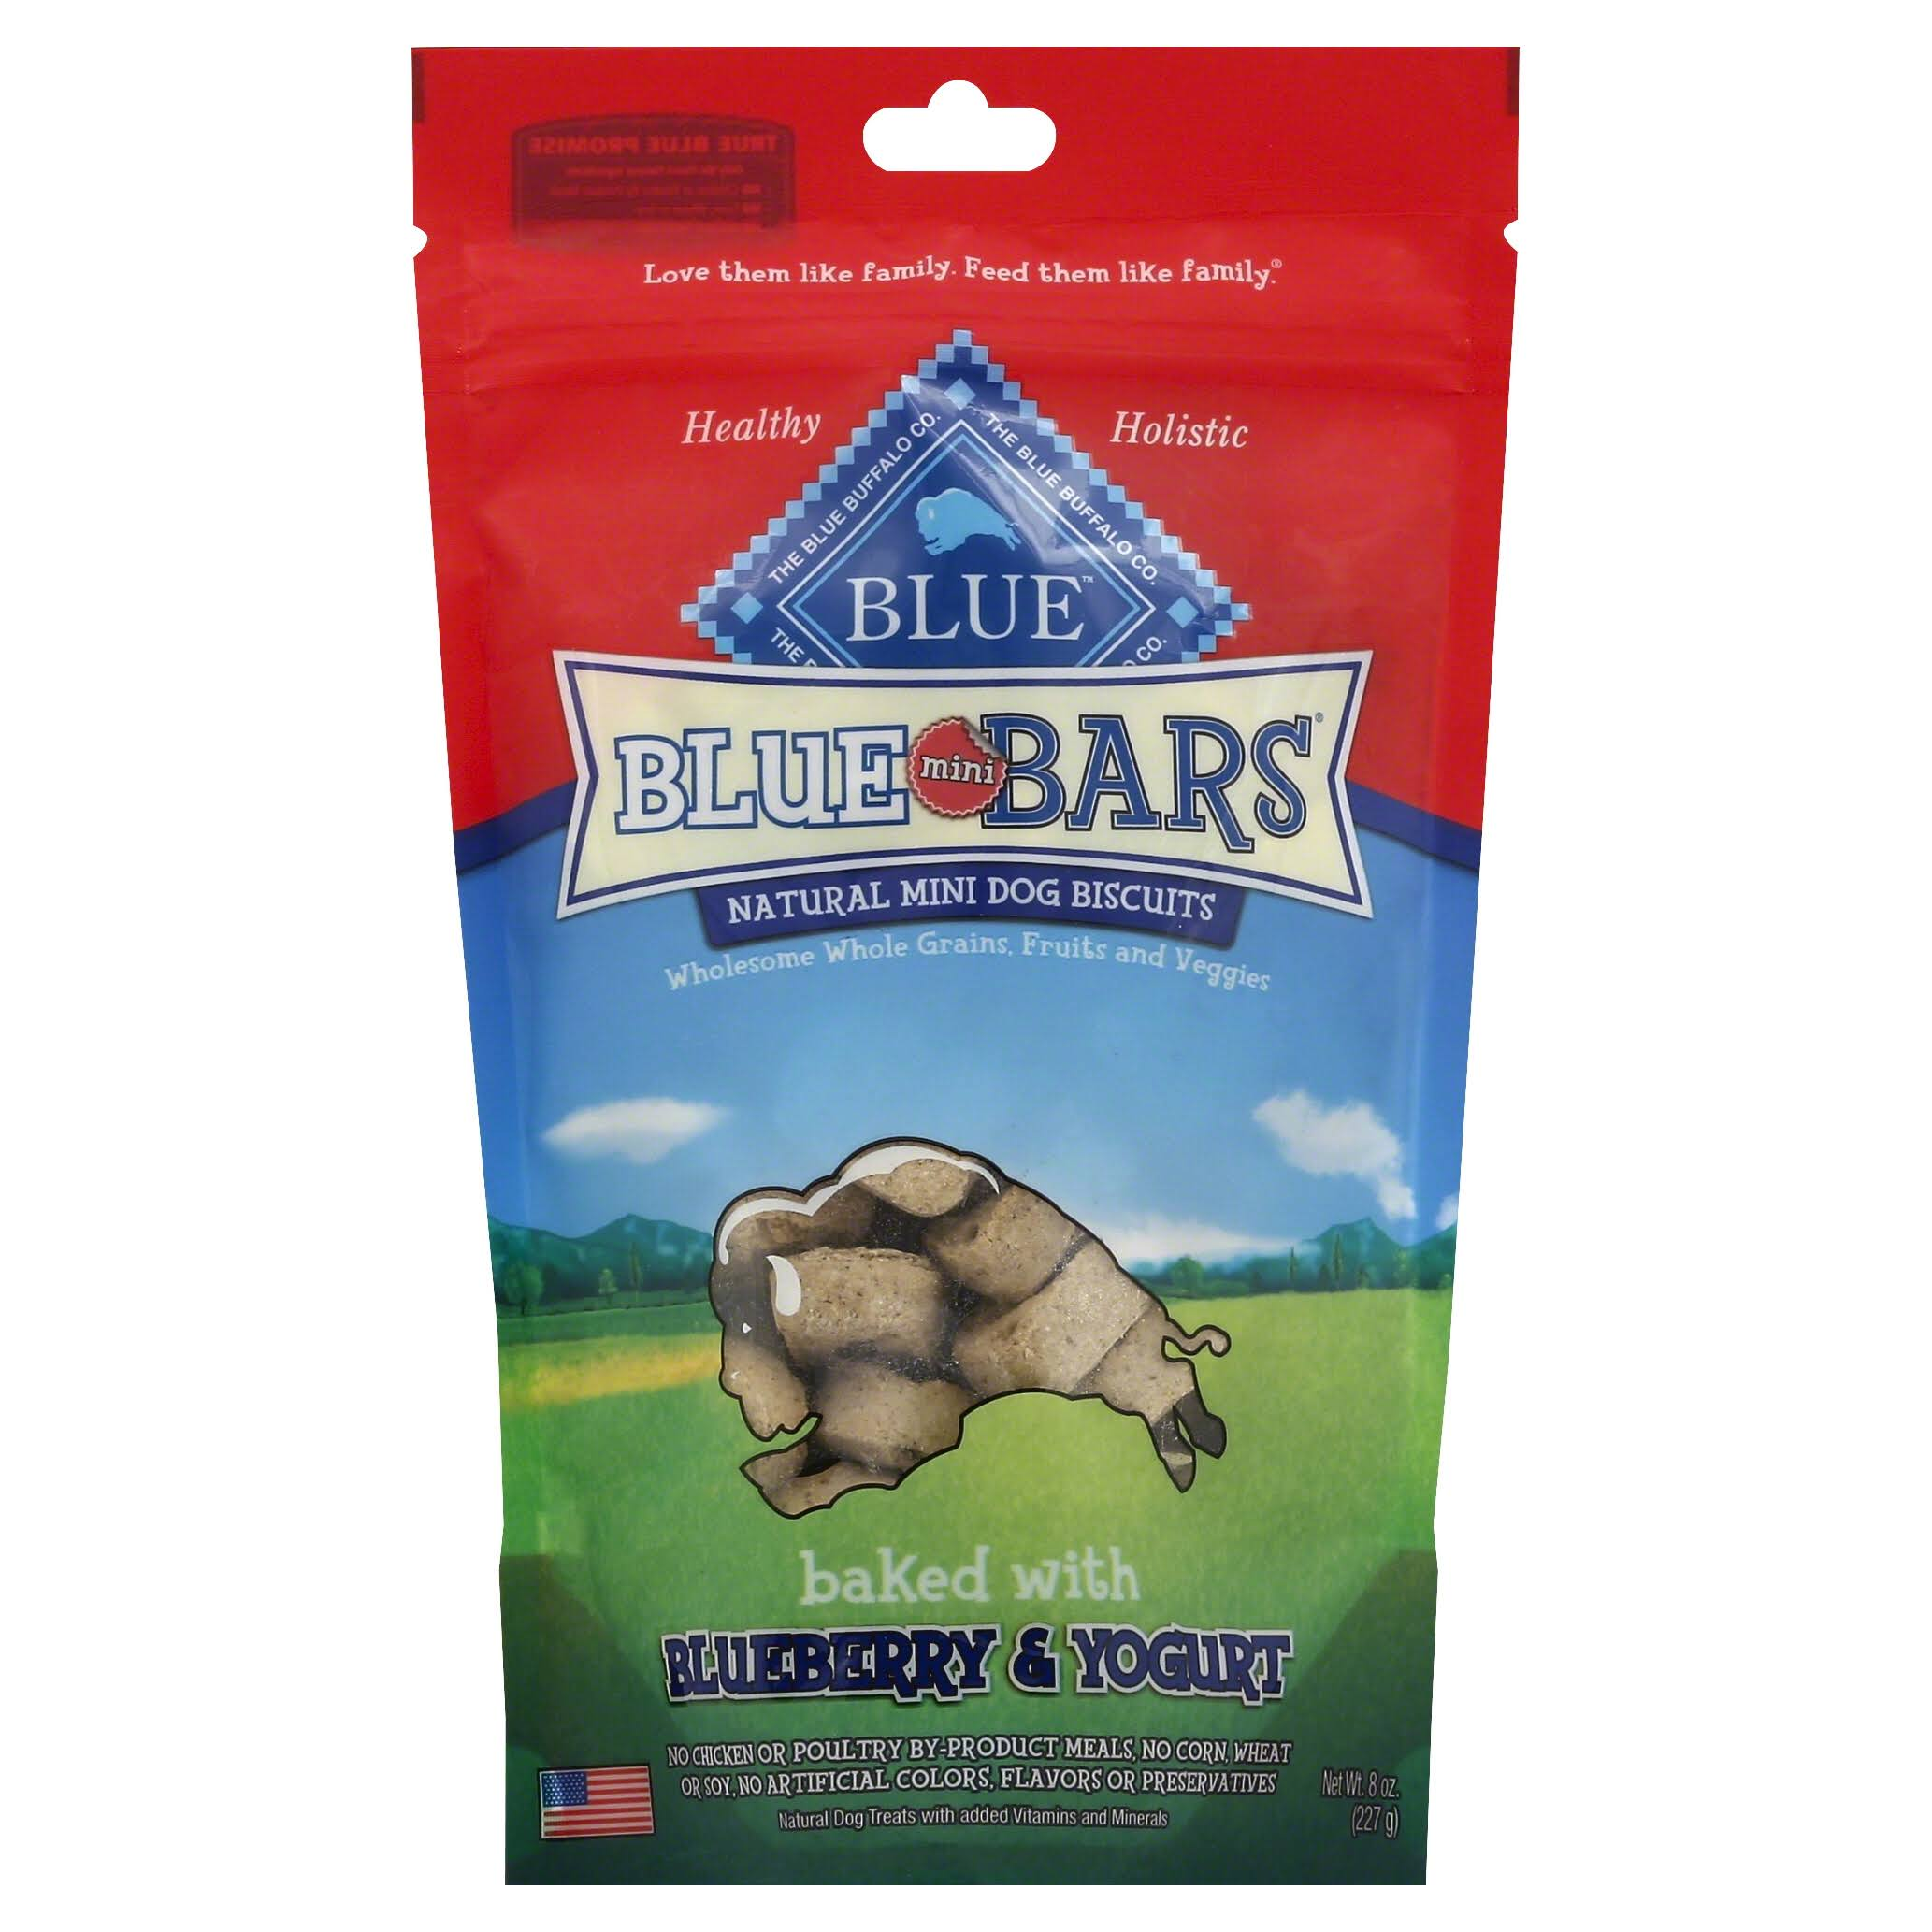 Blue Buffalo Mini Blue Bars Dog Biscuits - Blueberry & Yogurt, 8 Oz